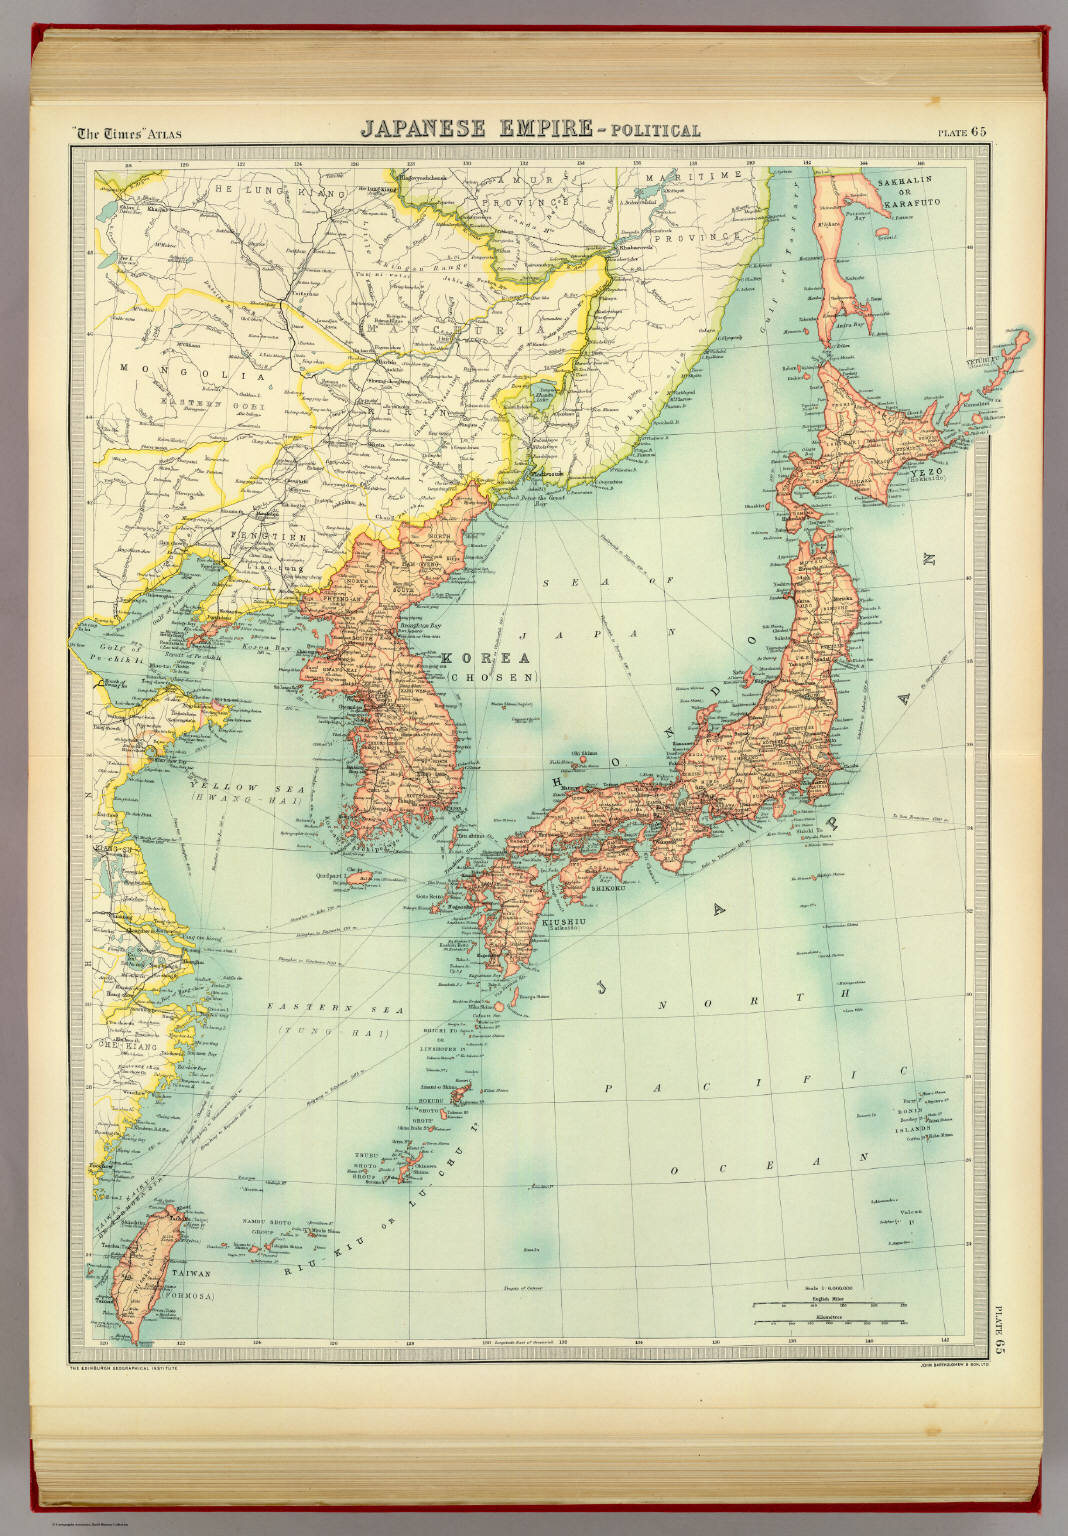 Japanese empire political david rumsey historical map collection japanese empire political gumiabroncs Images